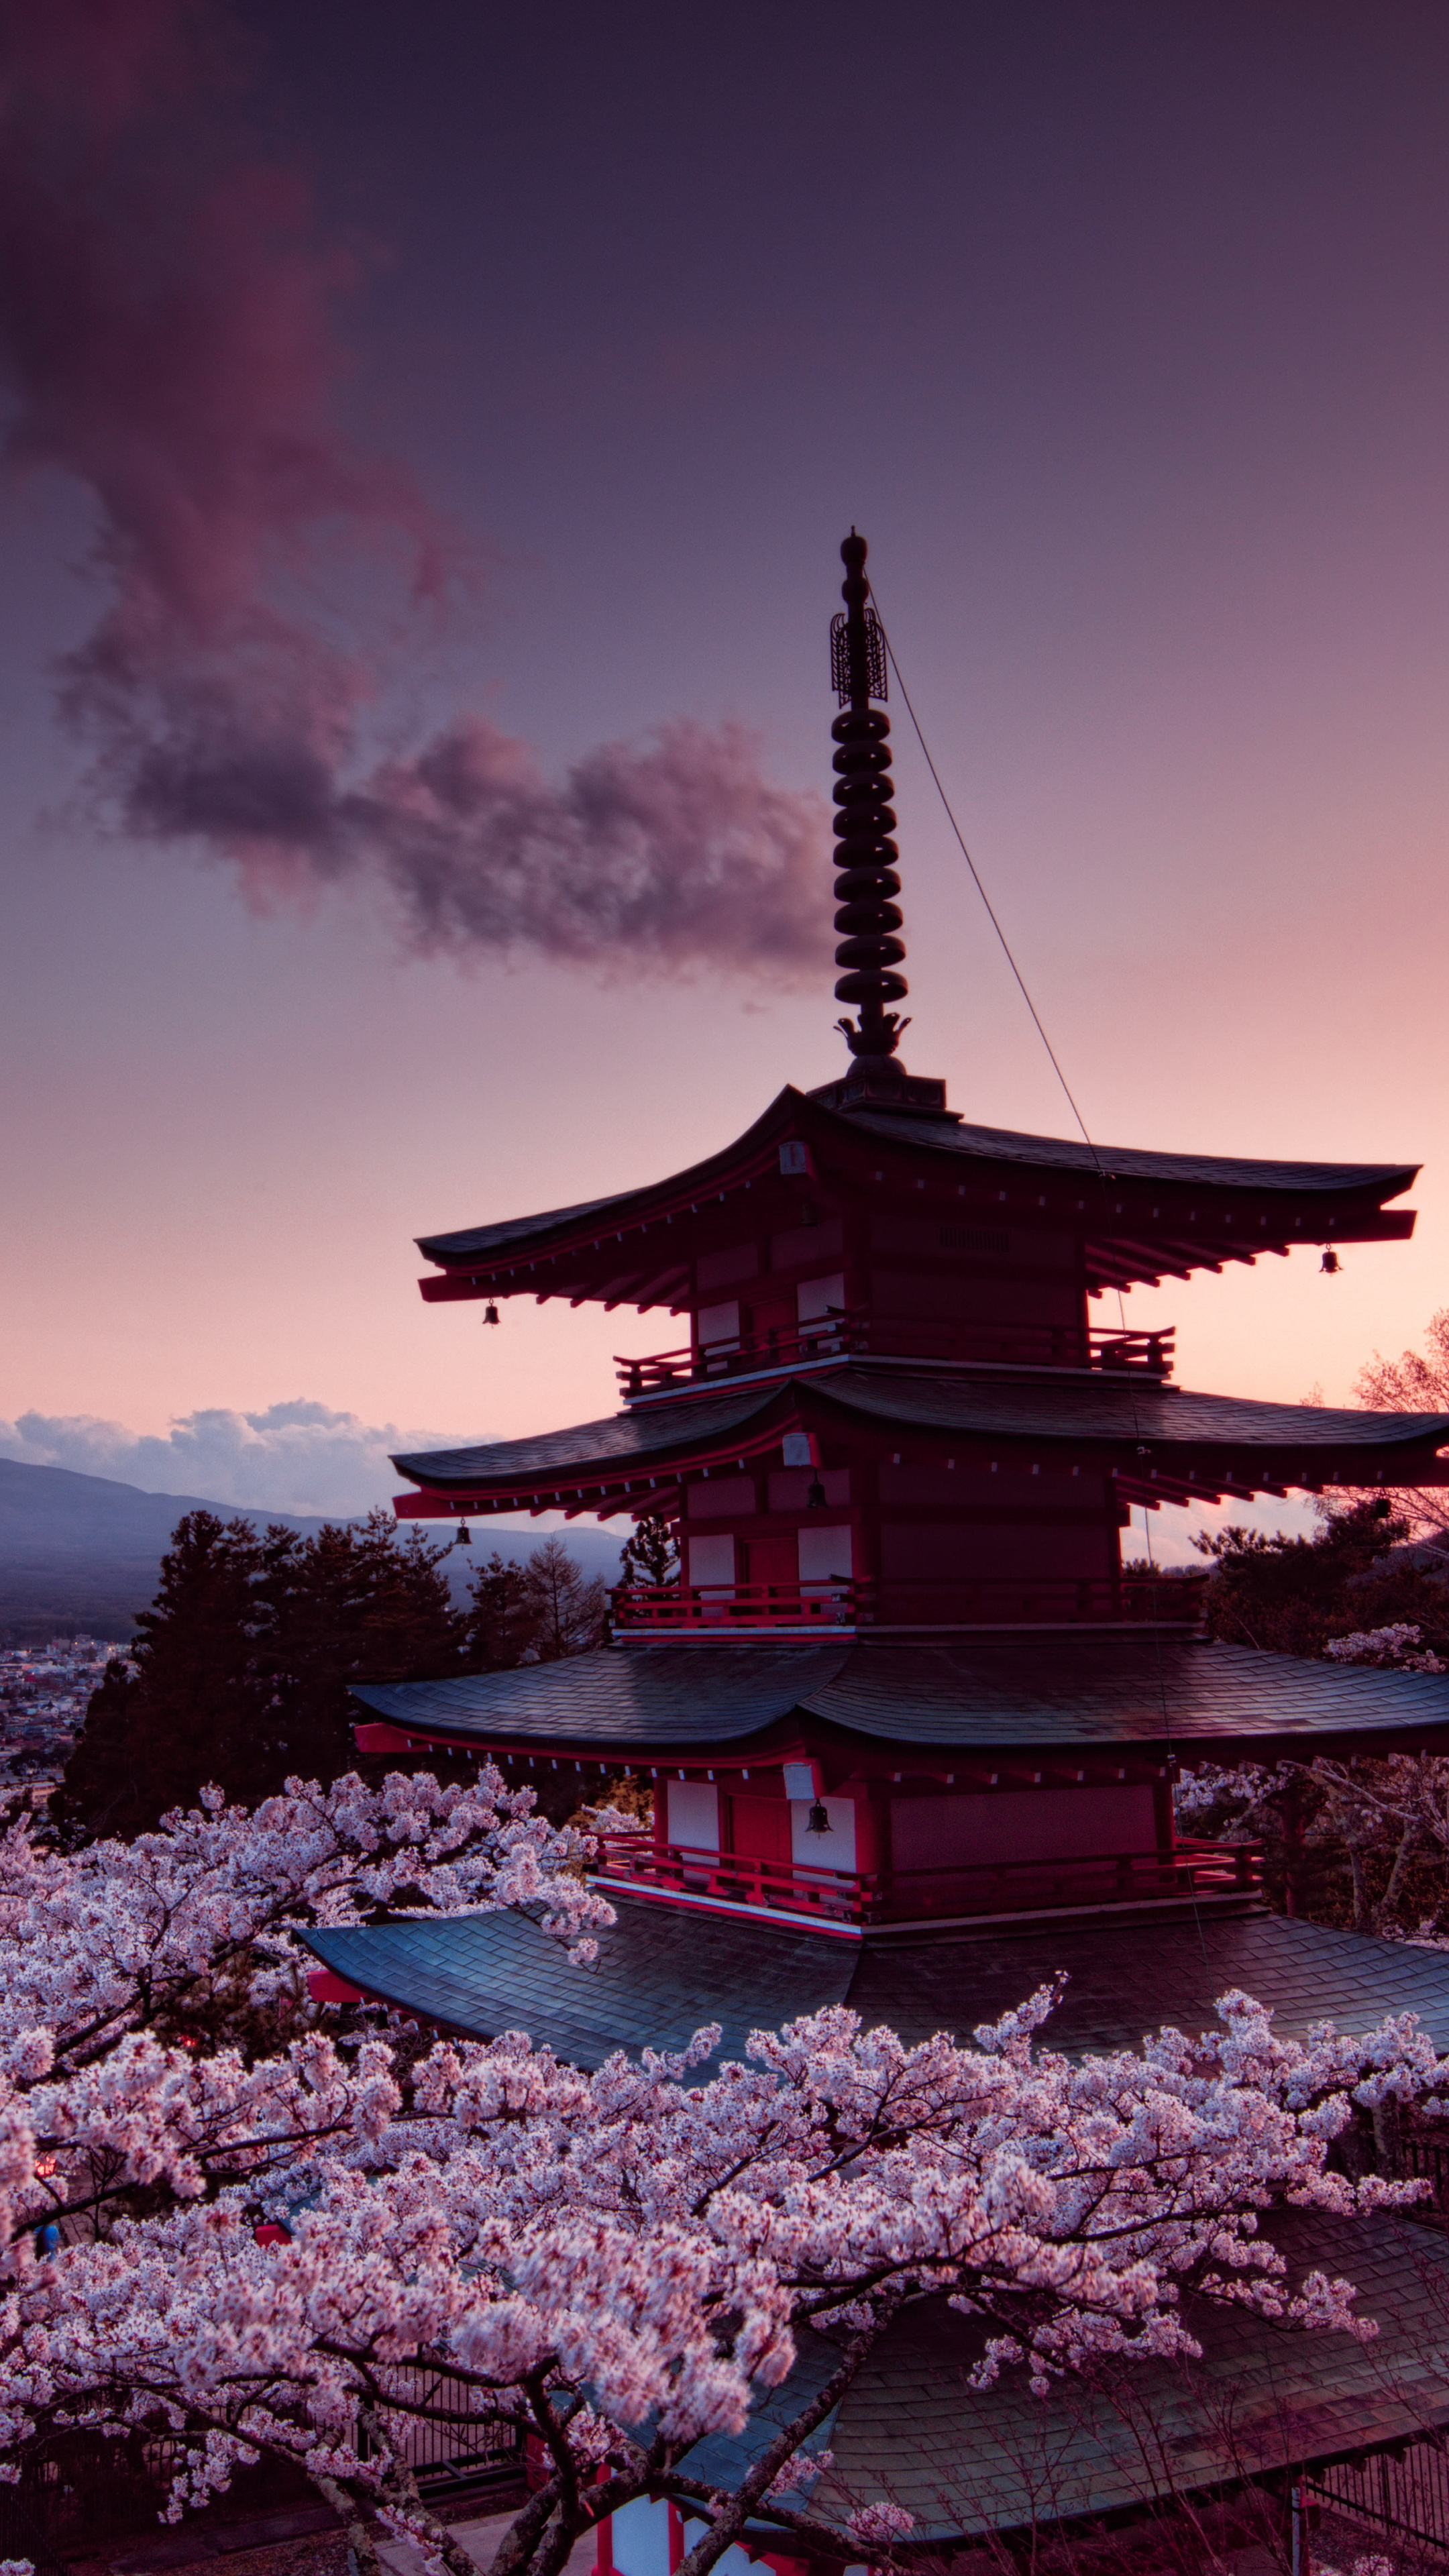 2160x3840 churei tower mount fuji in japan 8k sony xperia - 2160x3840 wallpaper ...